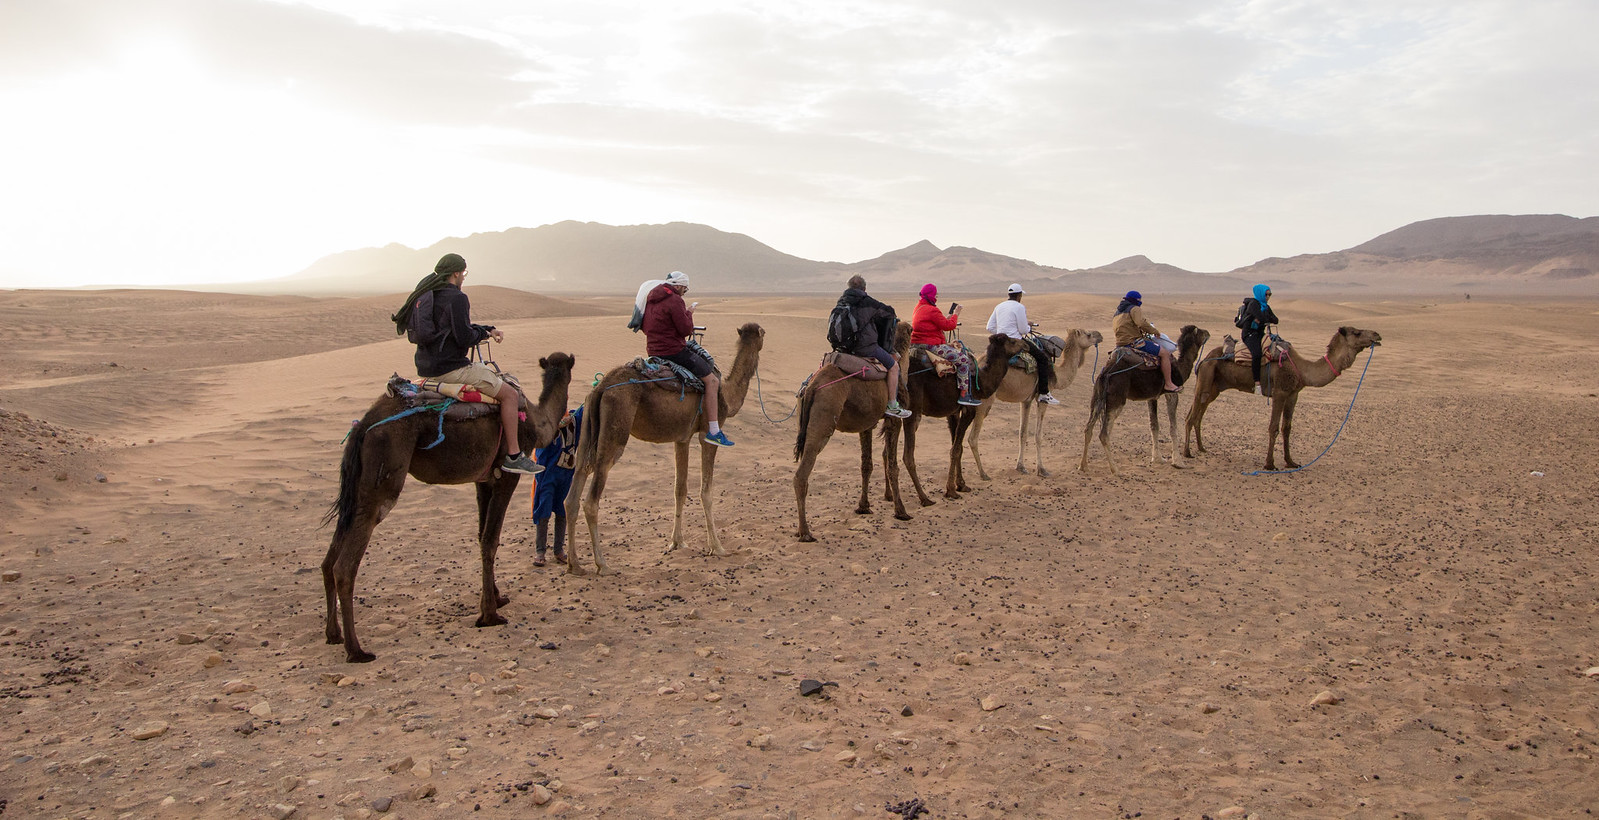 Riding camels in the Sahara desert at sunrise